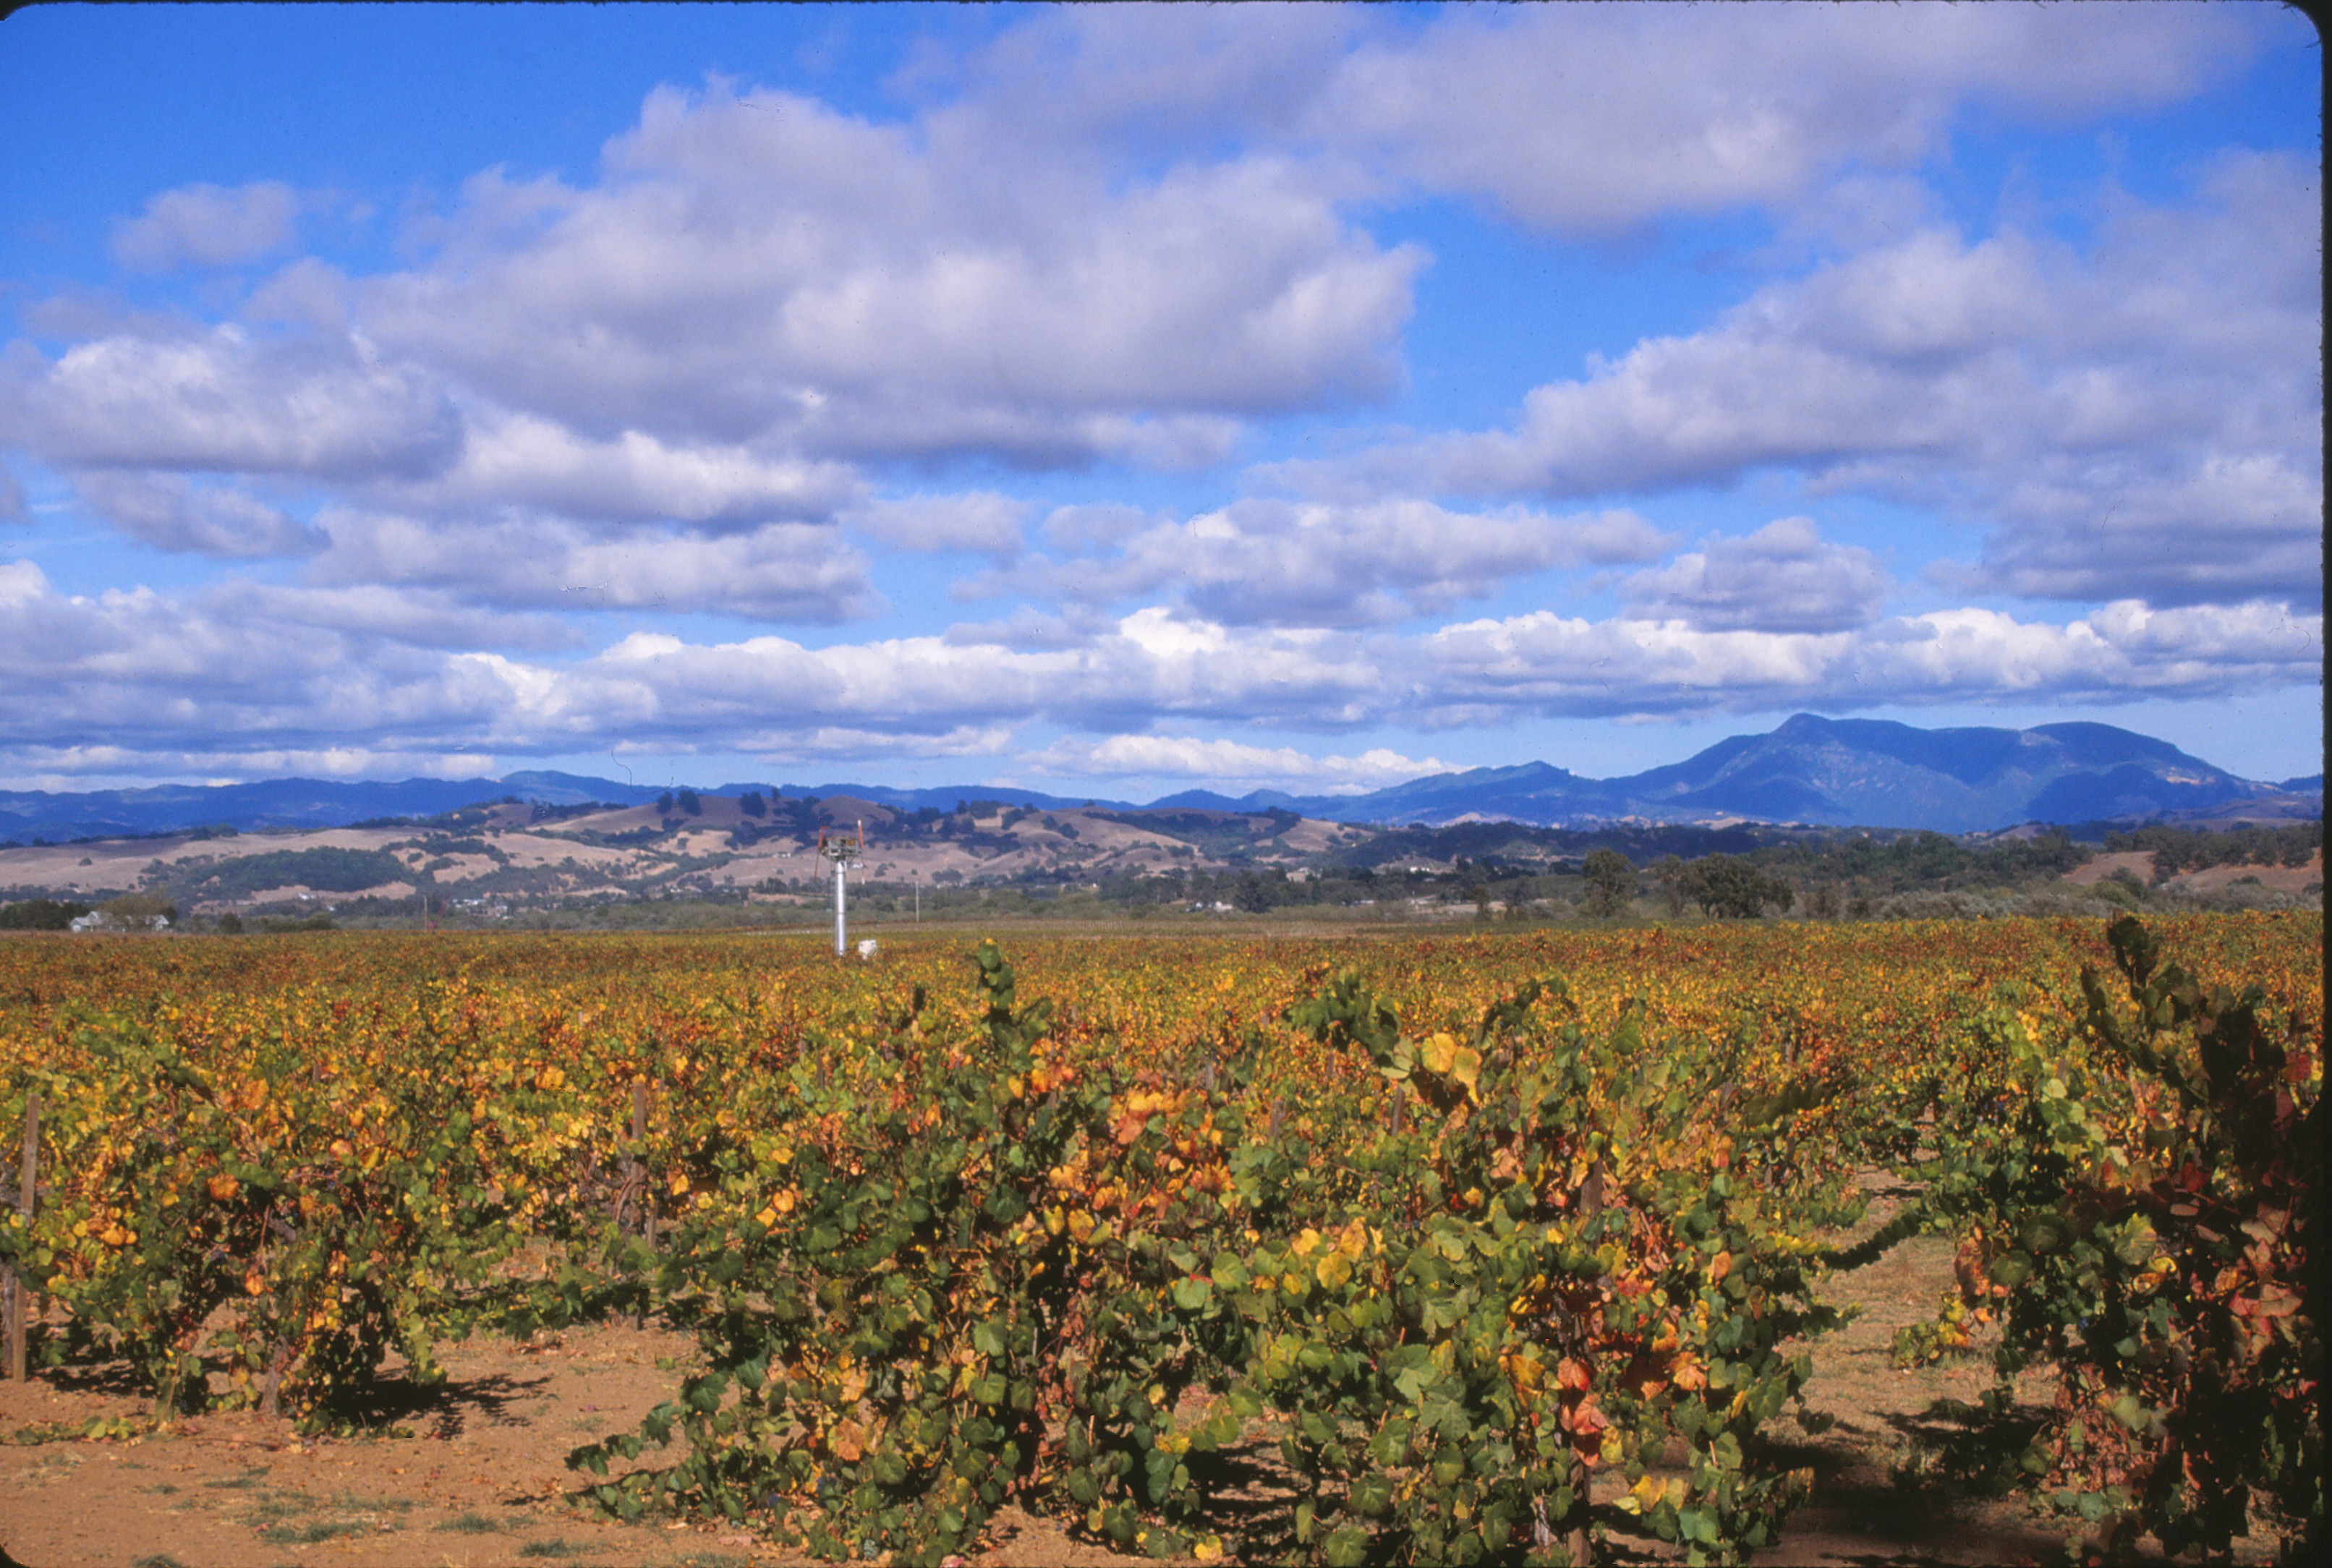 Wine Country California - Wikipedia